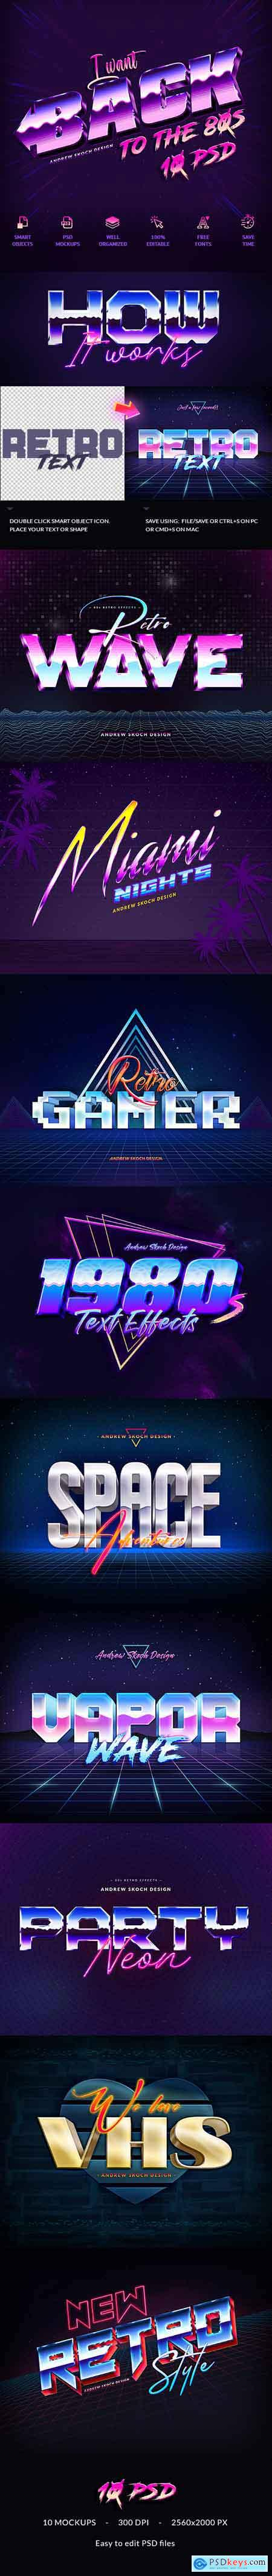 New 80s Text Effects 24925986